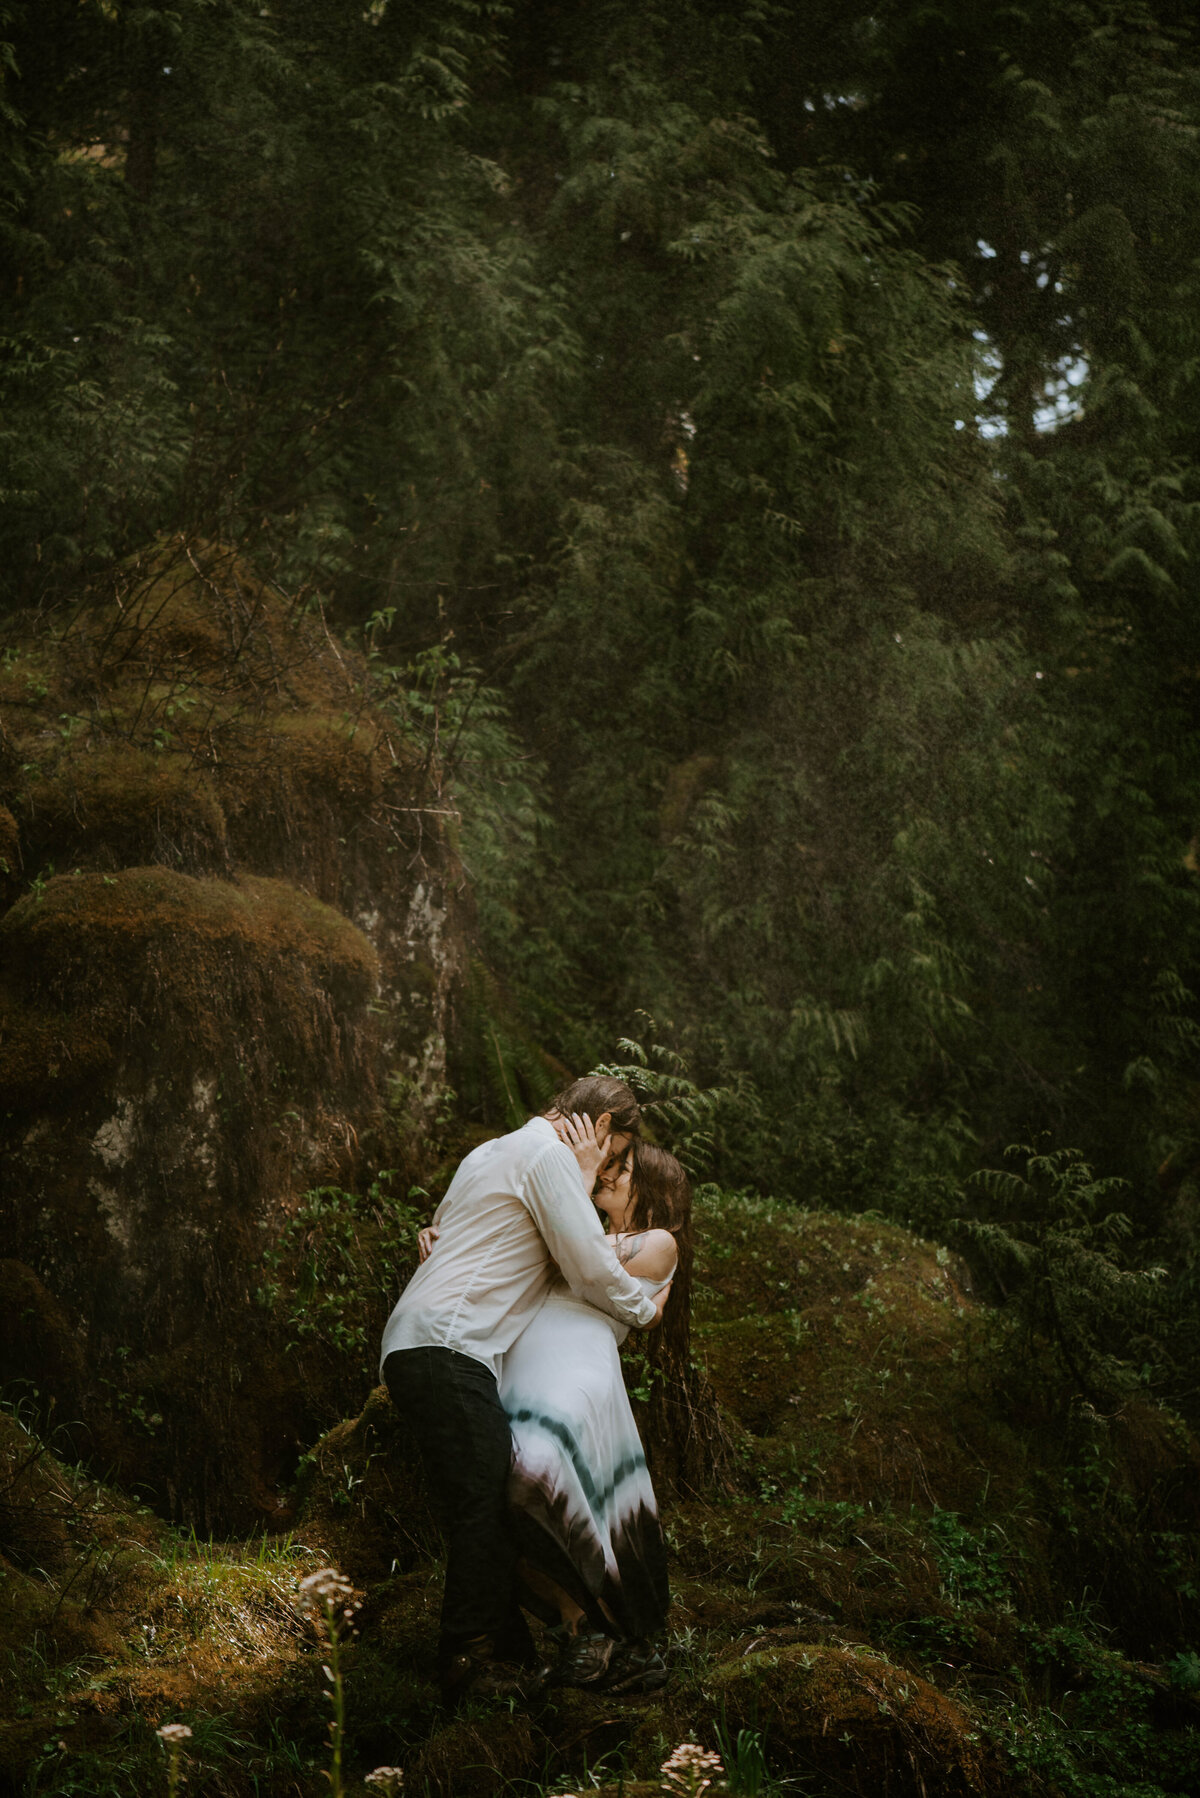 sahalie-falls-summer-oregon-photoshoot-adventure-photographer-bend-couple-forest-outfits-elopement-wedding8498